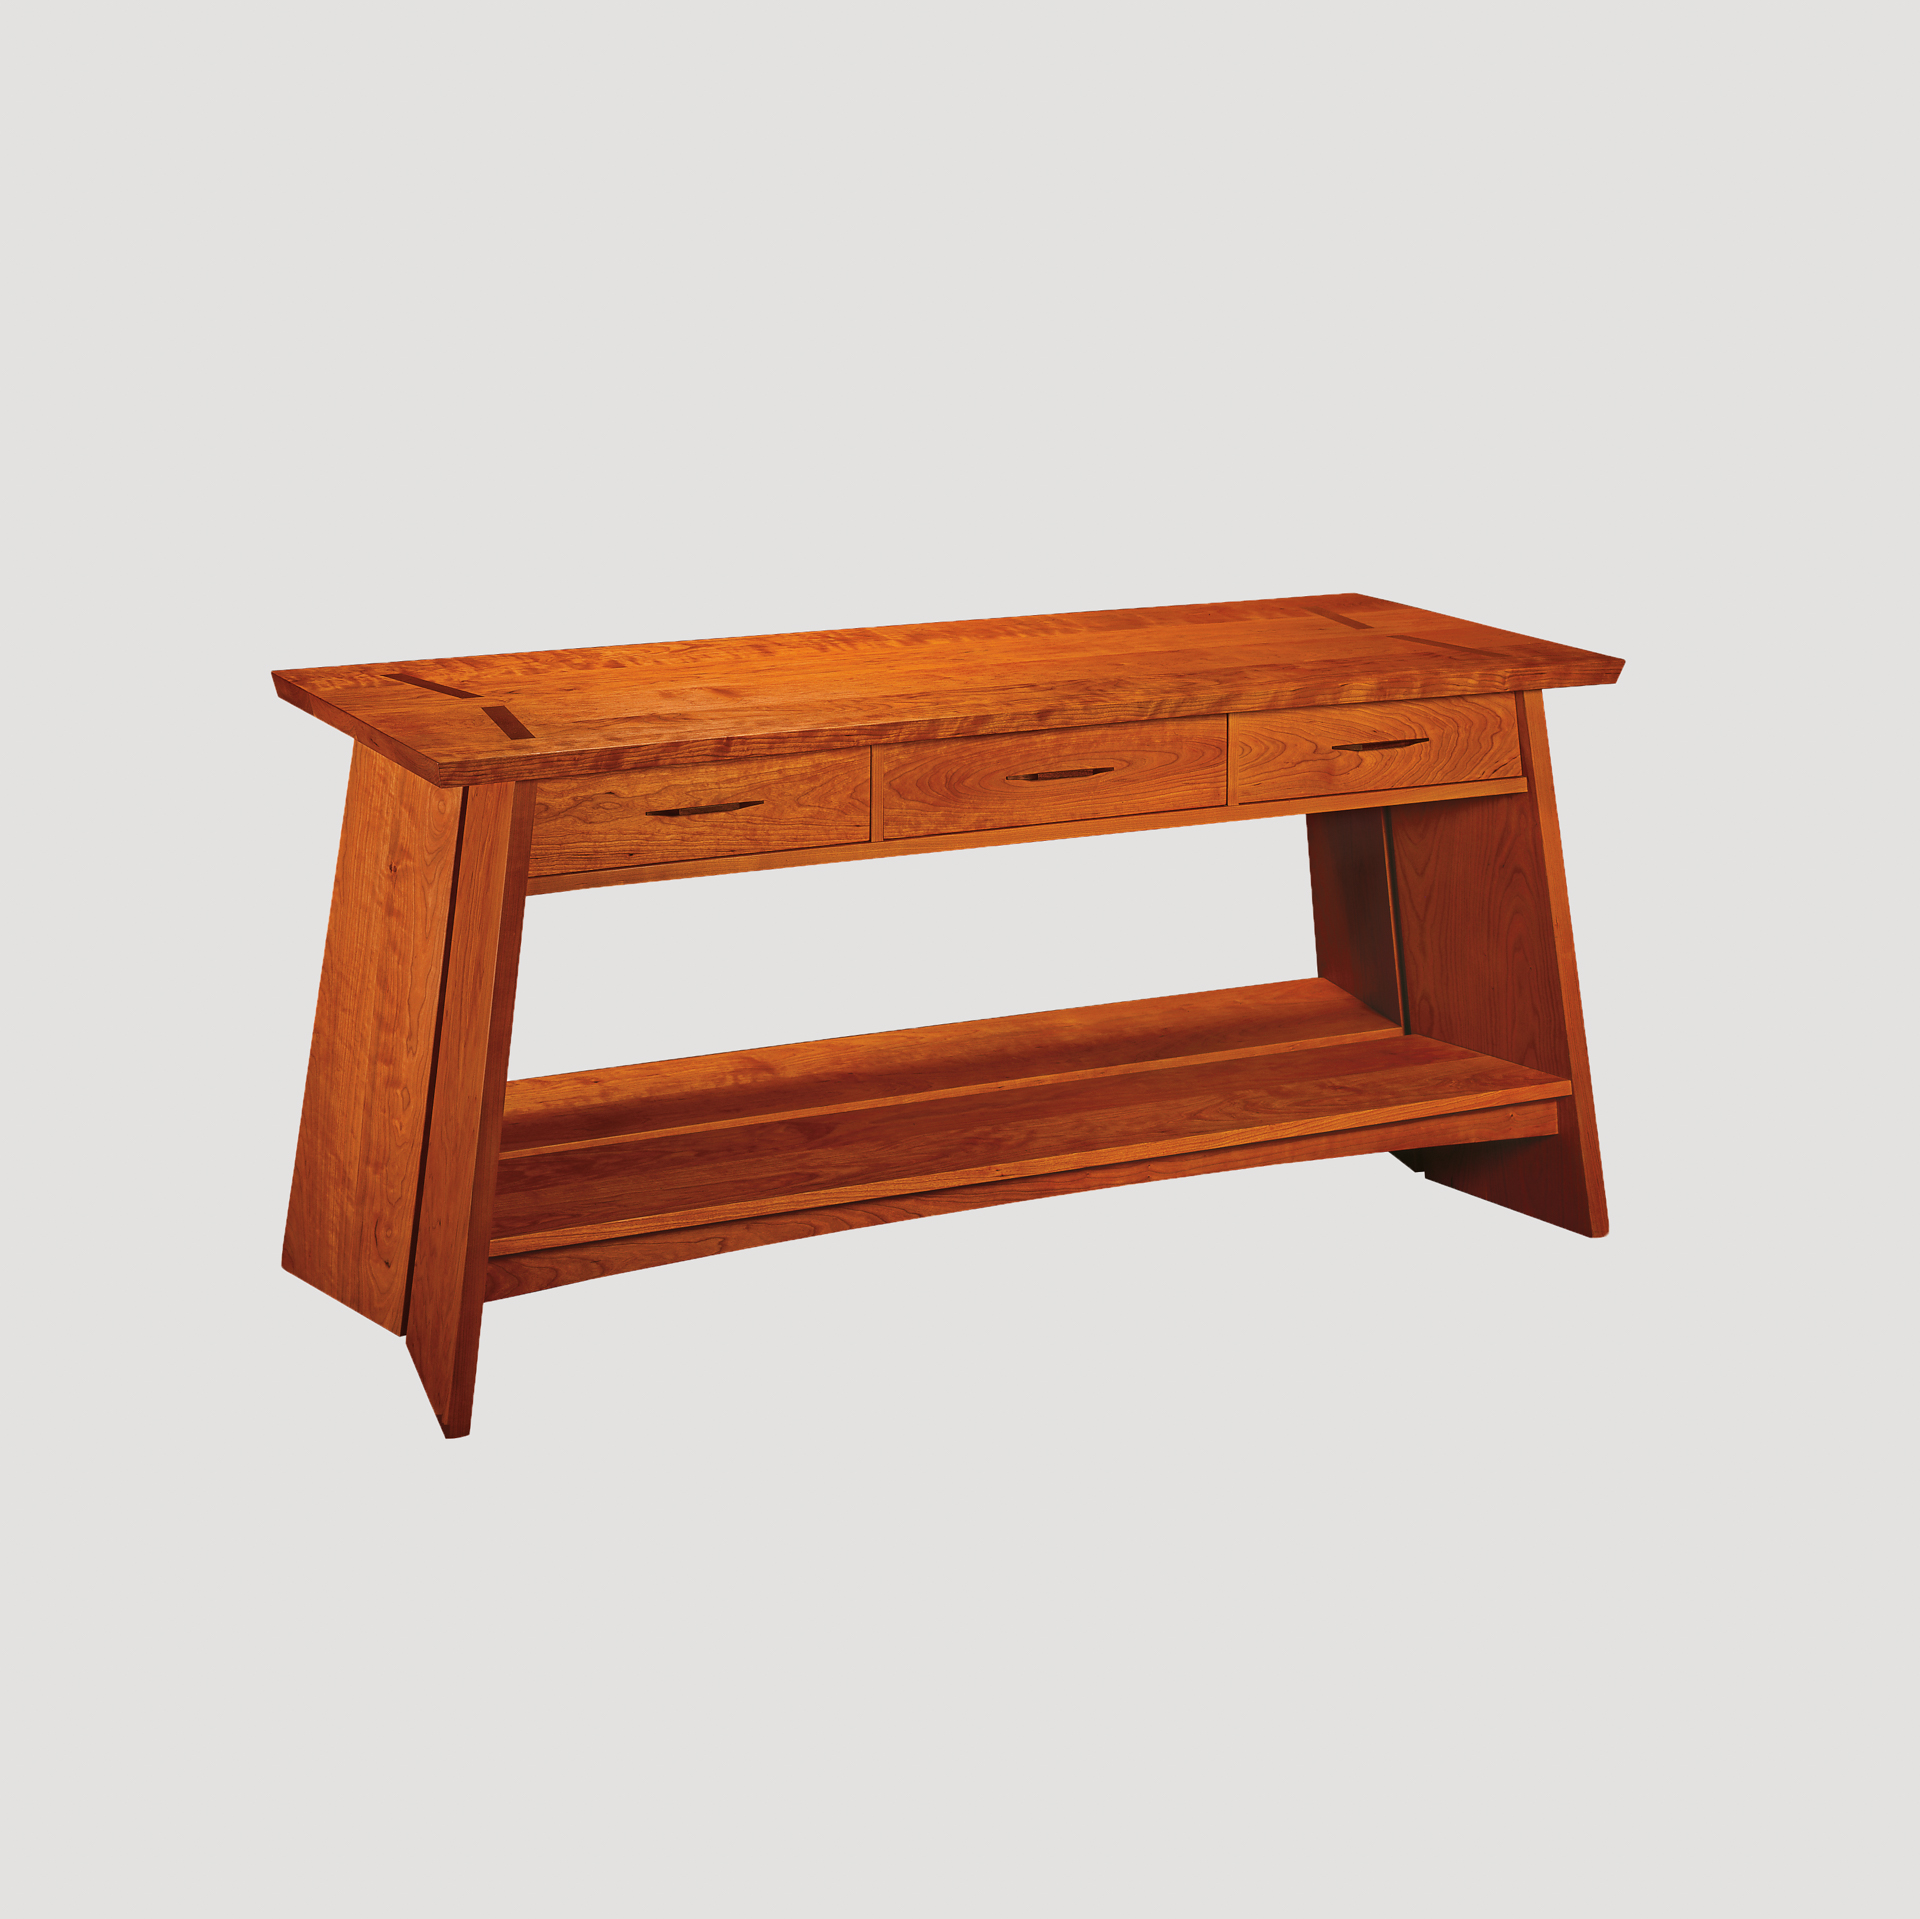 pertaining best tables interior sweet life furniture to sideboard the sideboards buffet table diy